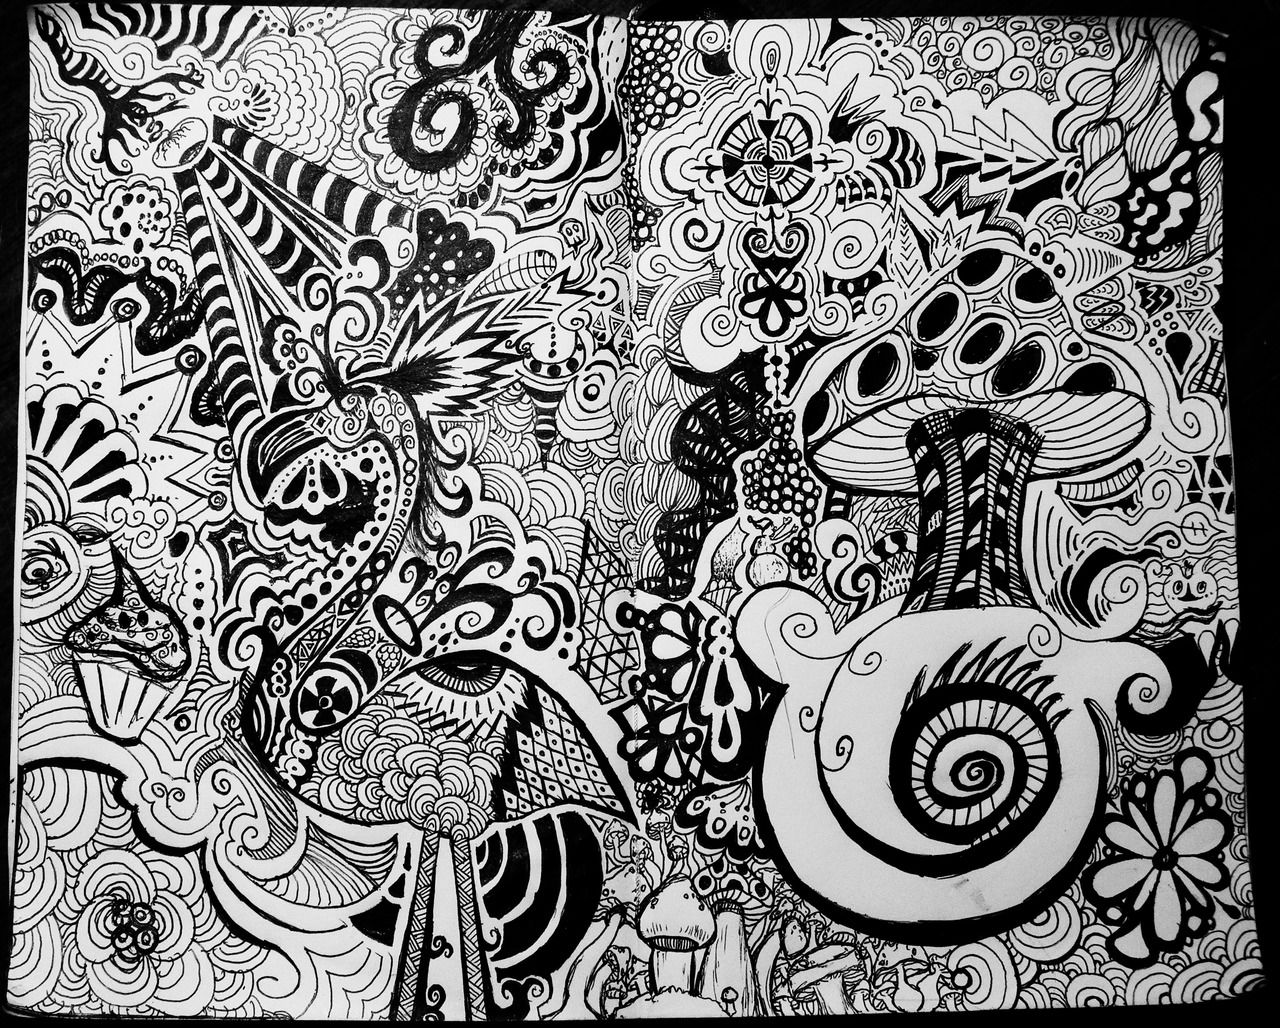 Psychedelic Groovy Doodles Vector Designs — Stock Vector ...